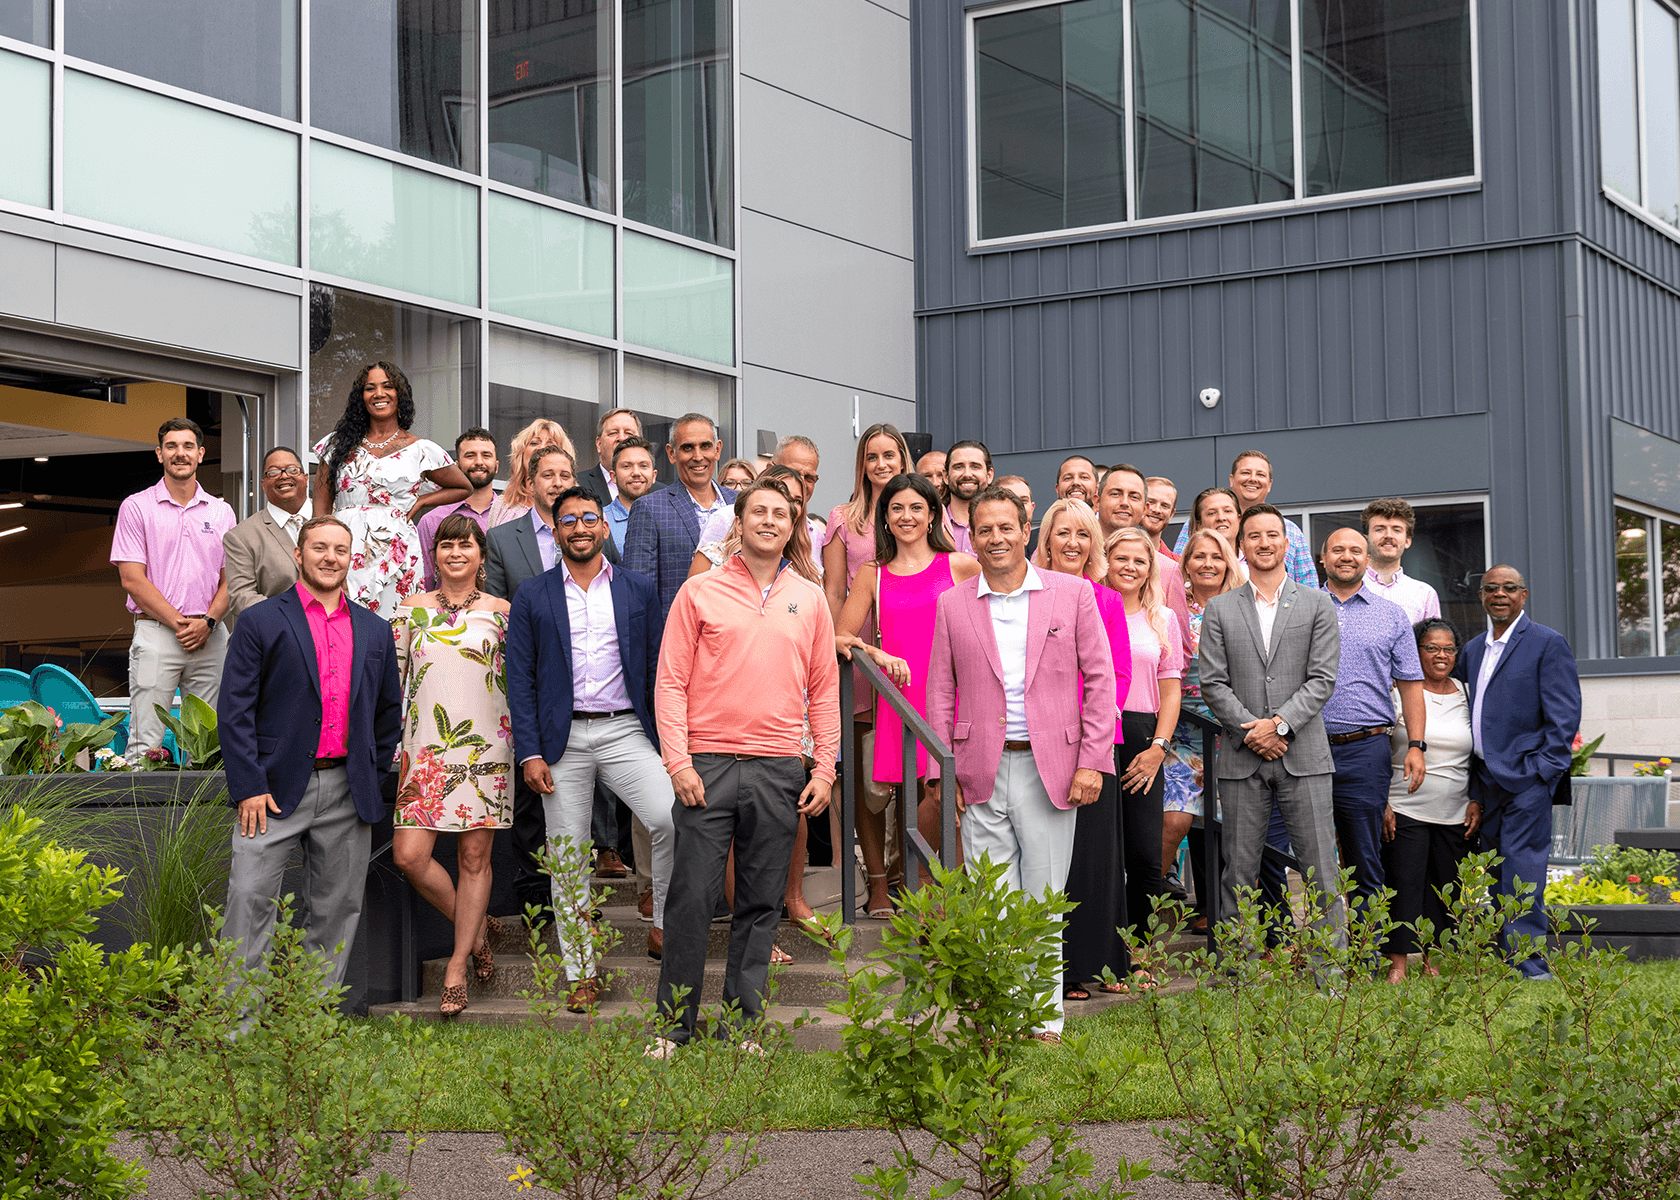 BSRE group photo on patio